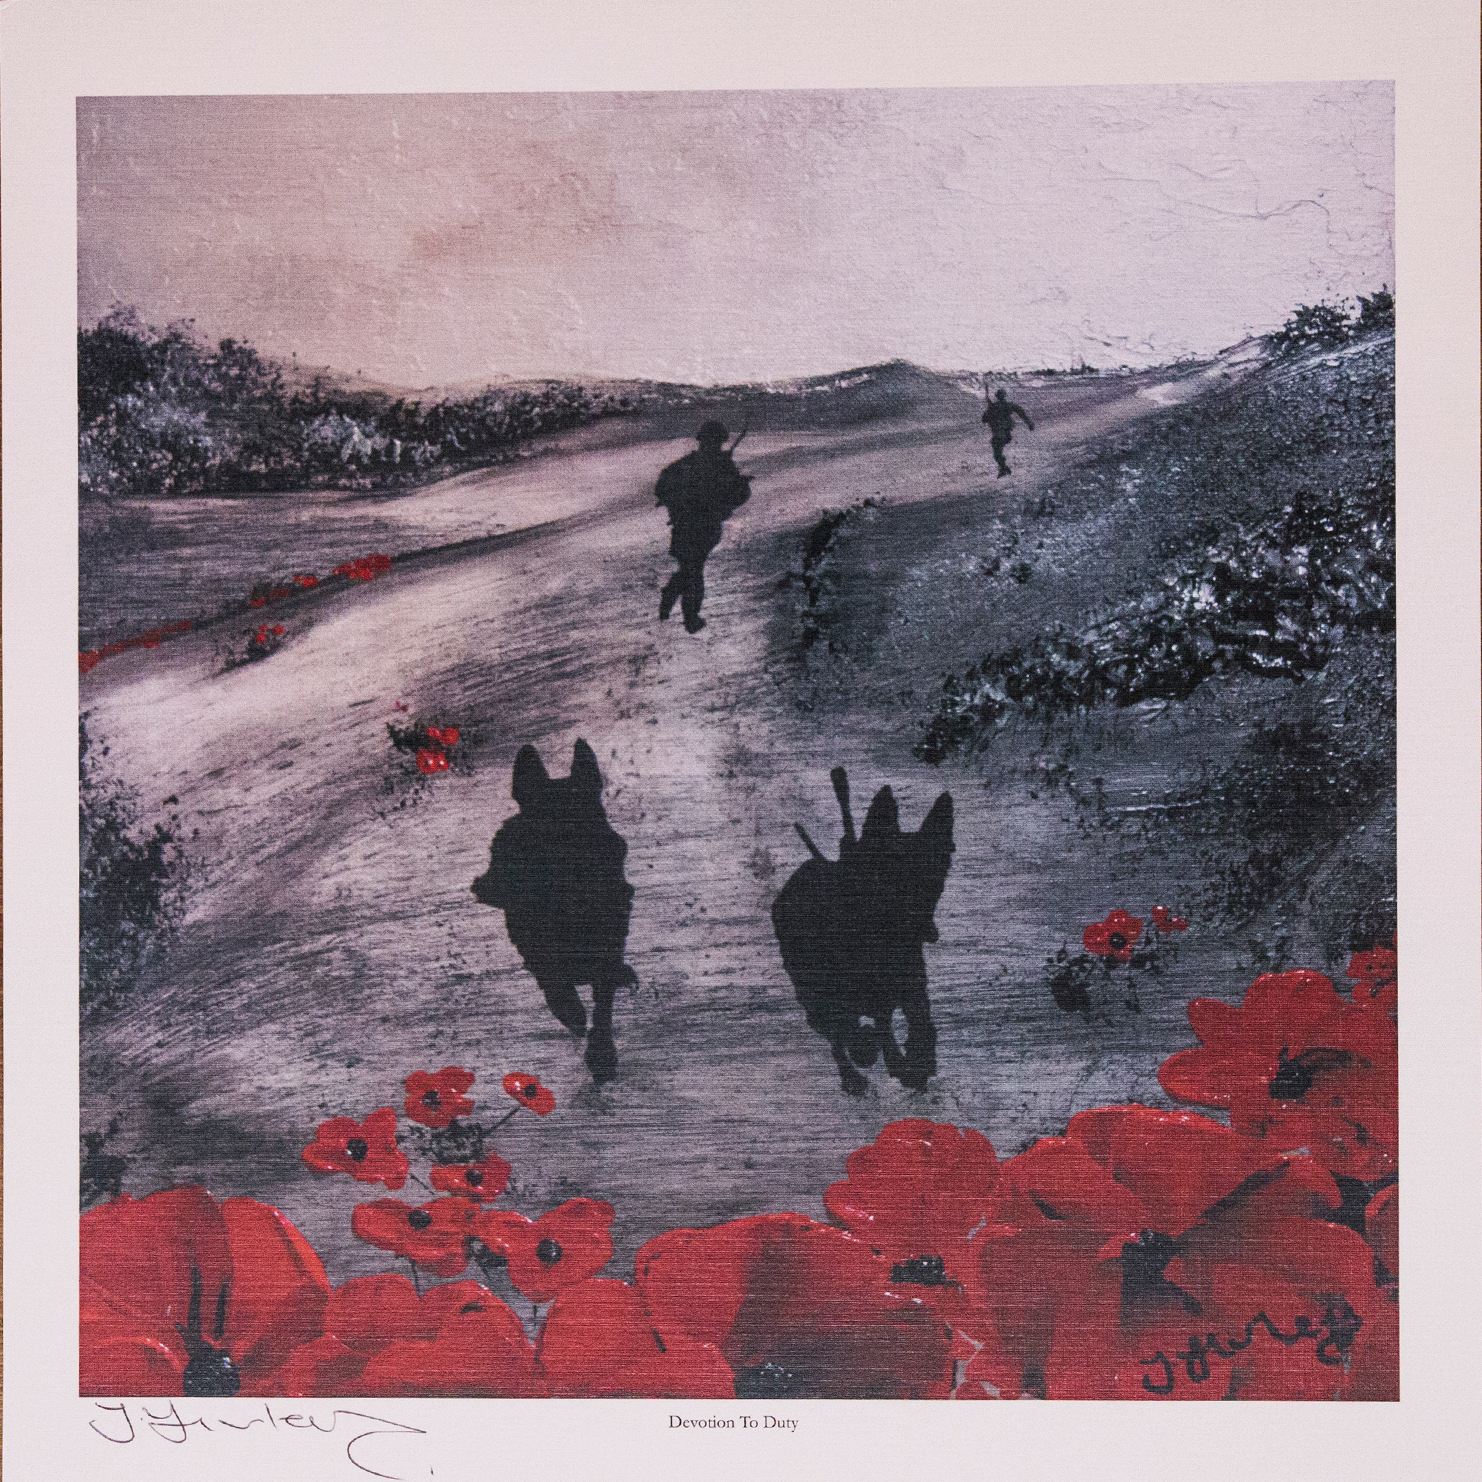 We are thrilled to announce the auction of 'Devotion to Duty' by one of the country's foremost Remembrance artists, Jacqueline Hurley.